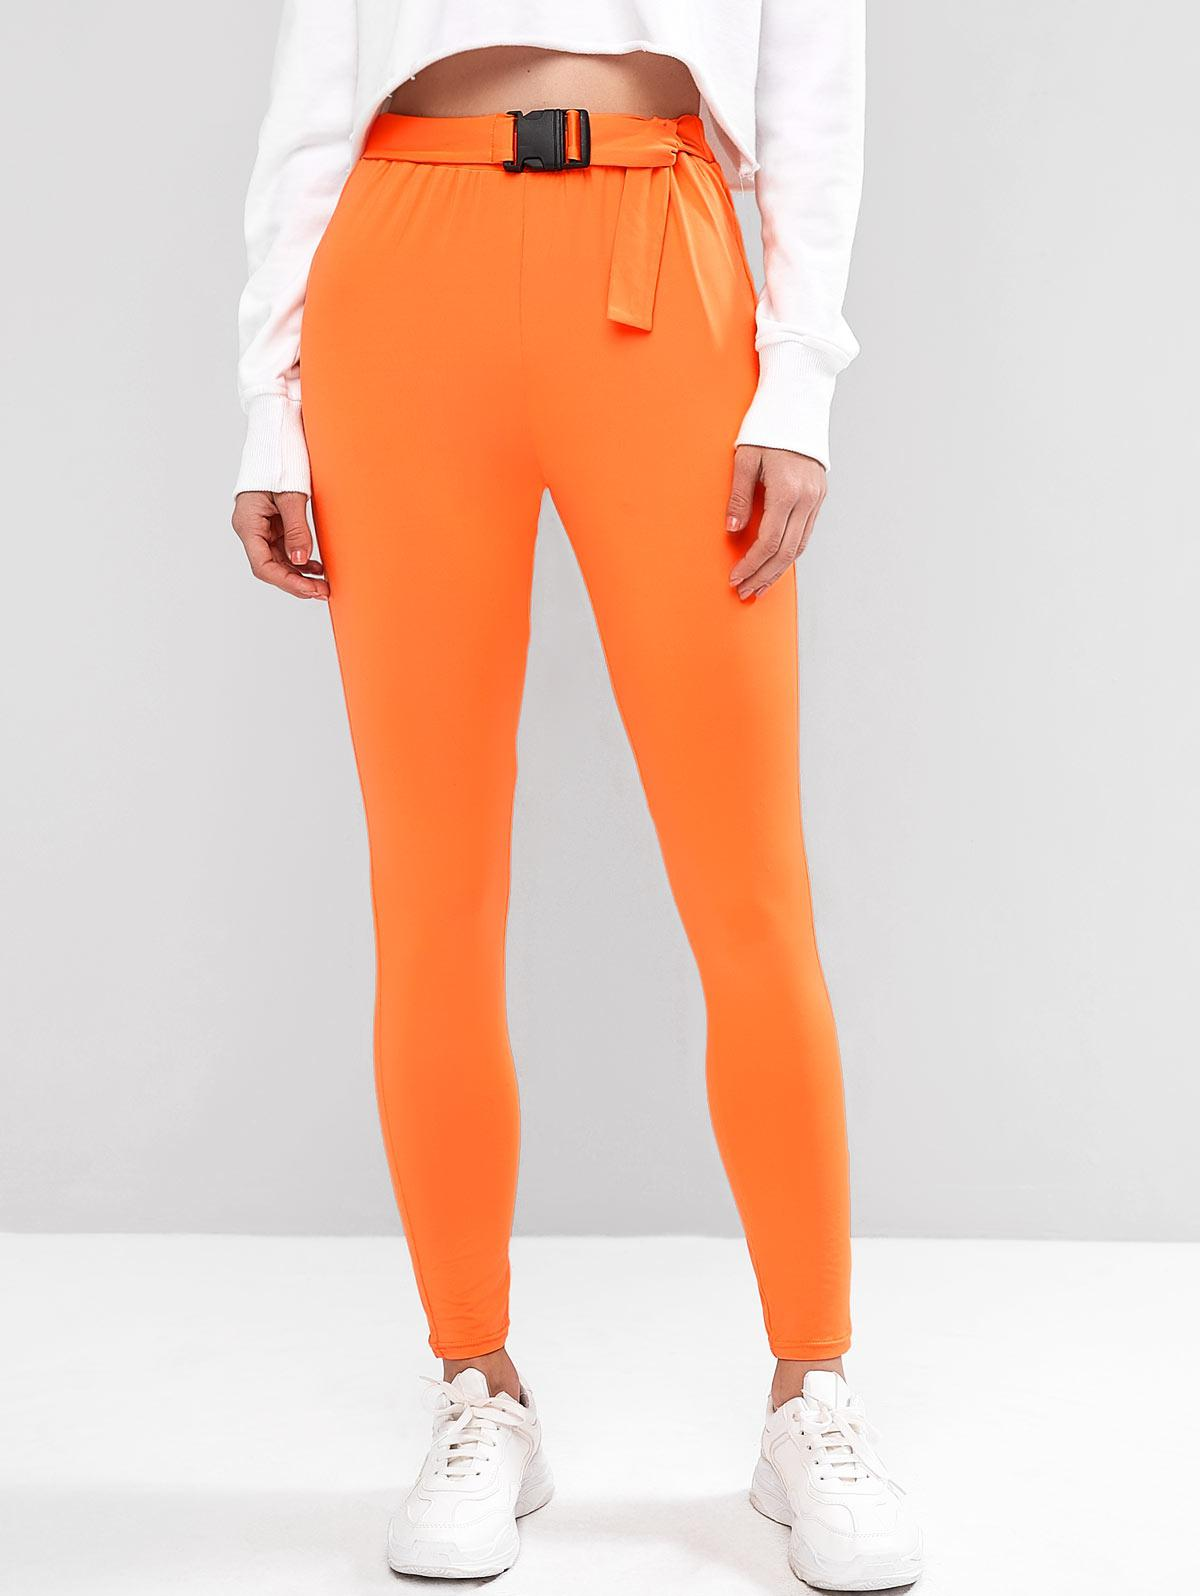 ZAFUL High Waisted Buckle Stretchy Leggings